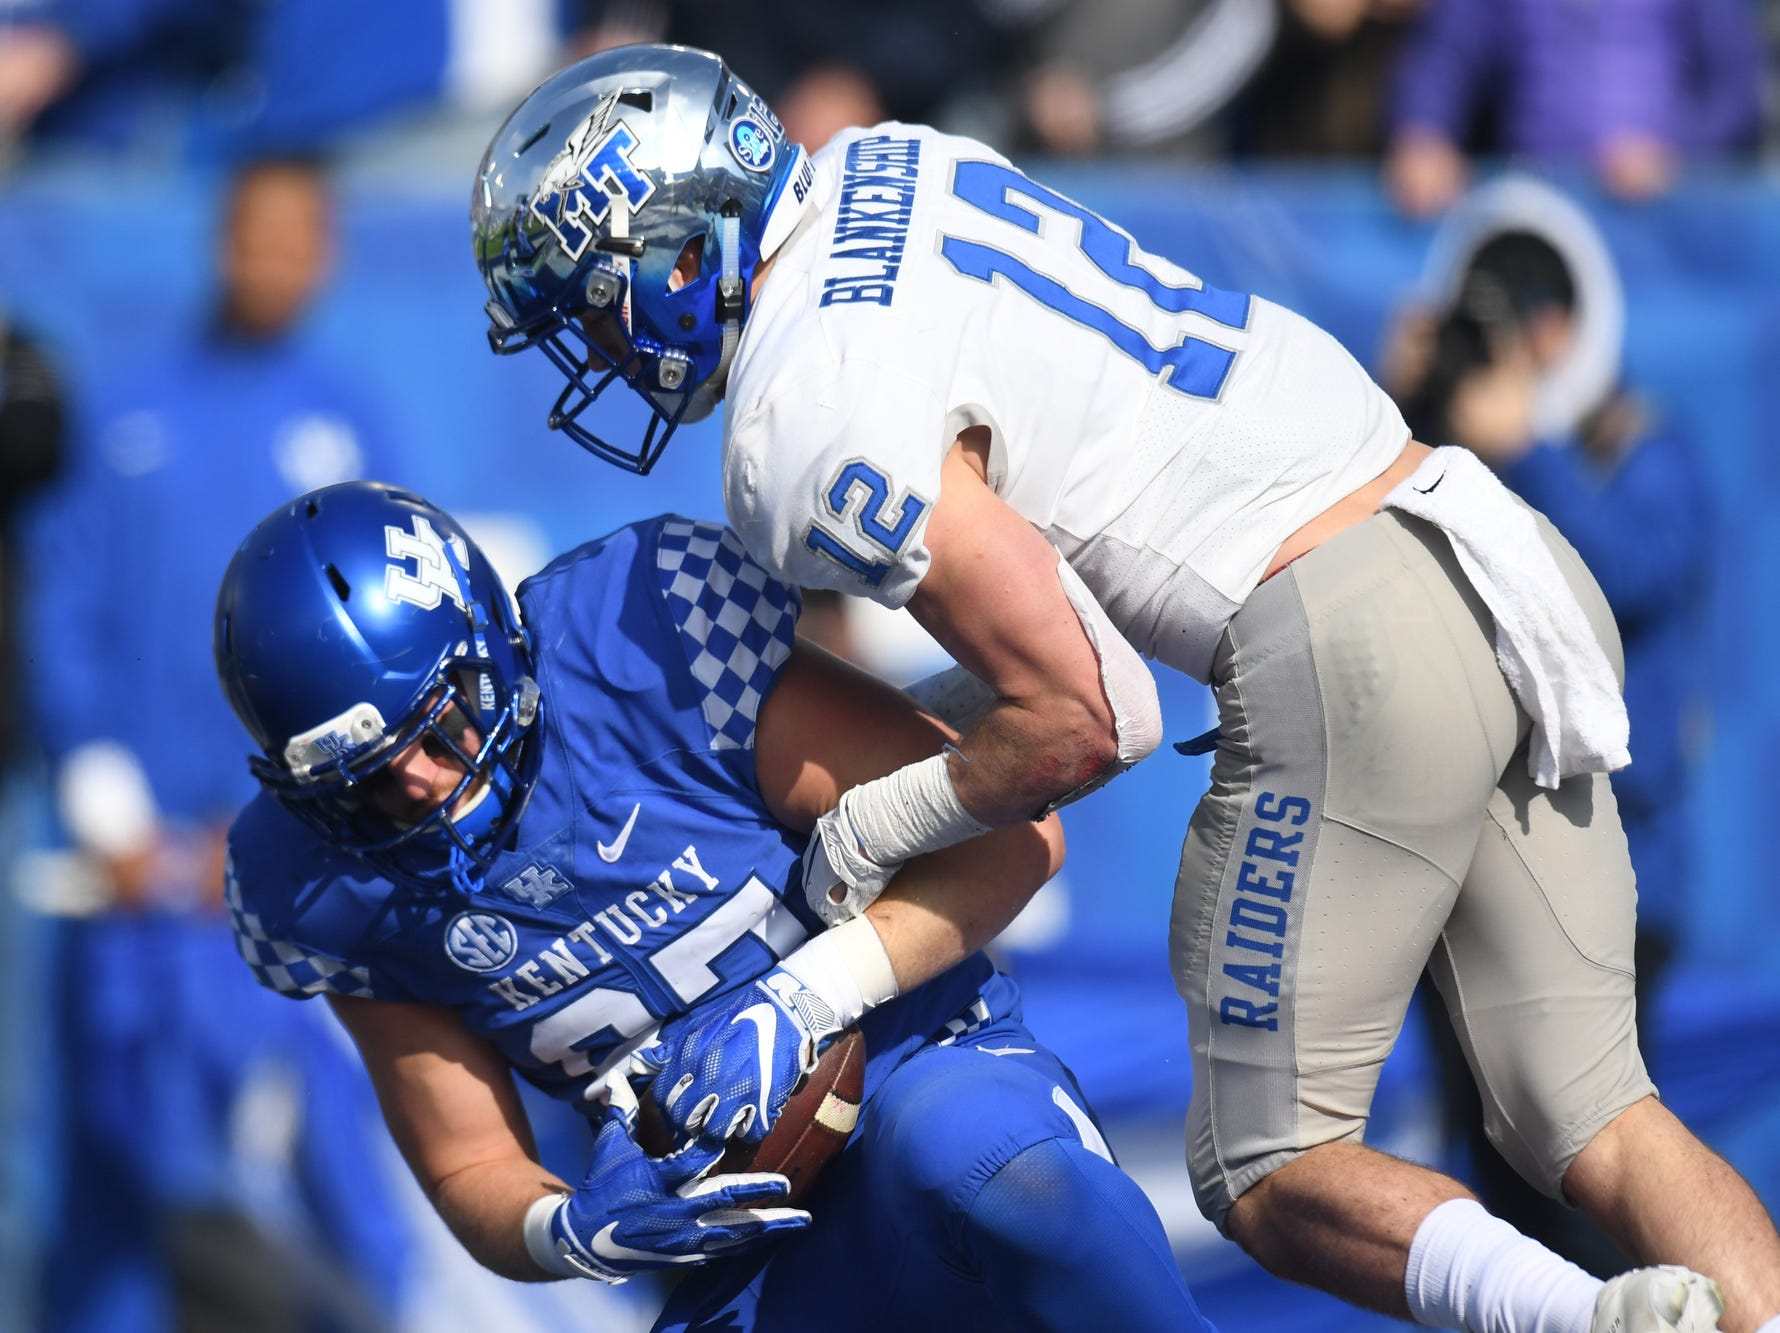 UK TE C.J. Conrad catches a touchdown pass during the University of Kentucky football game against Middle Tennessee at Kroger Field in Lexington, Kentucky on Saturday, November 17, 2018.